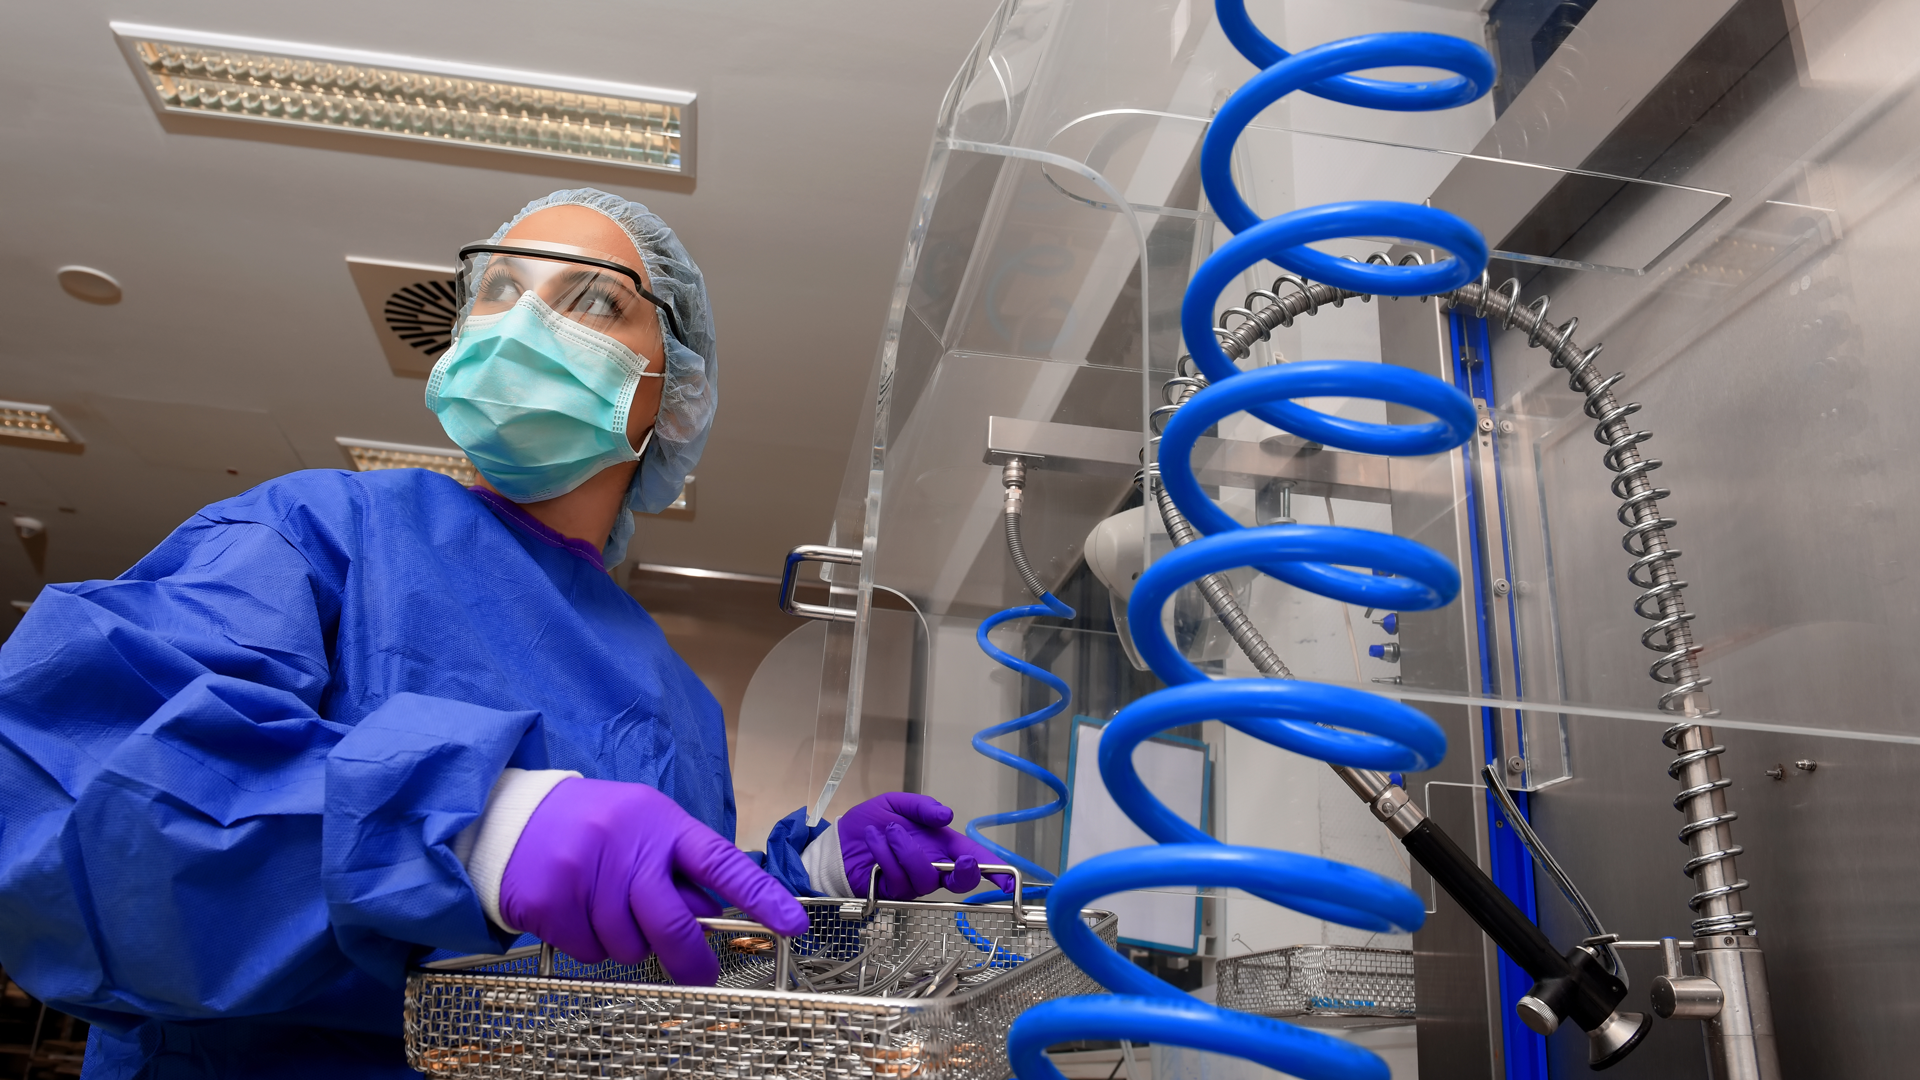 A hospital sterilization professional in full PPE prepares medical instruments for cleaning.